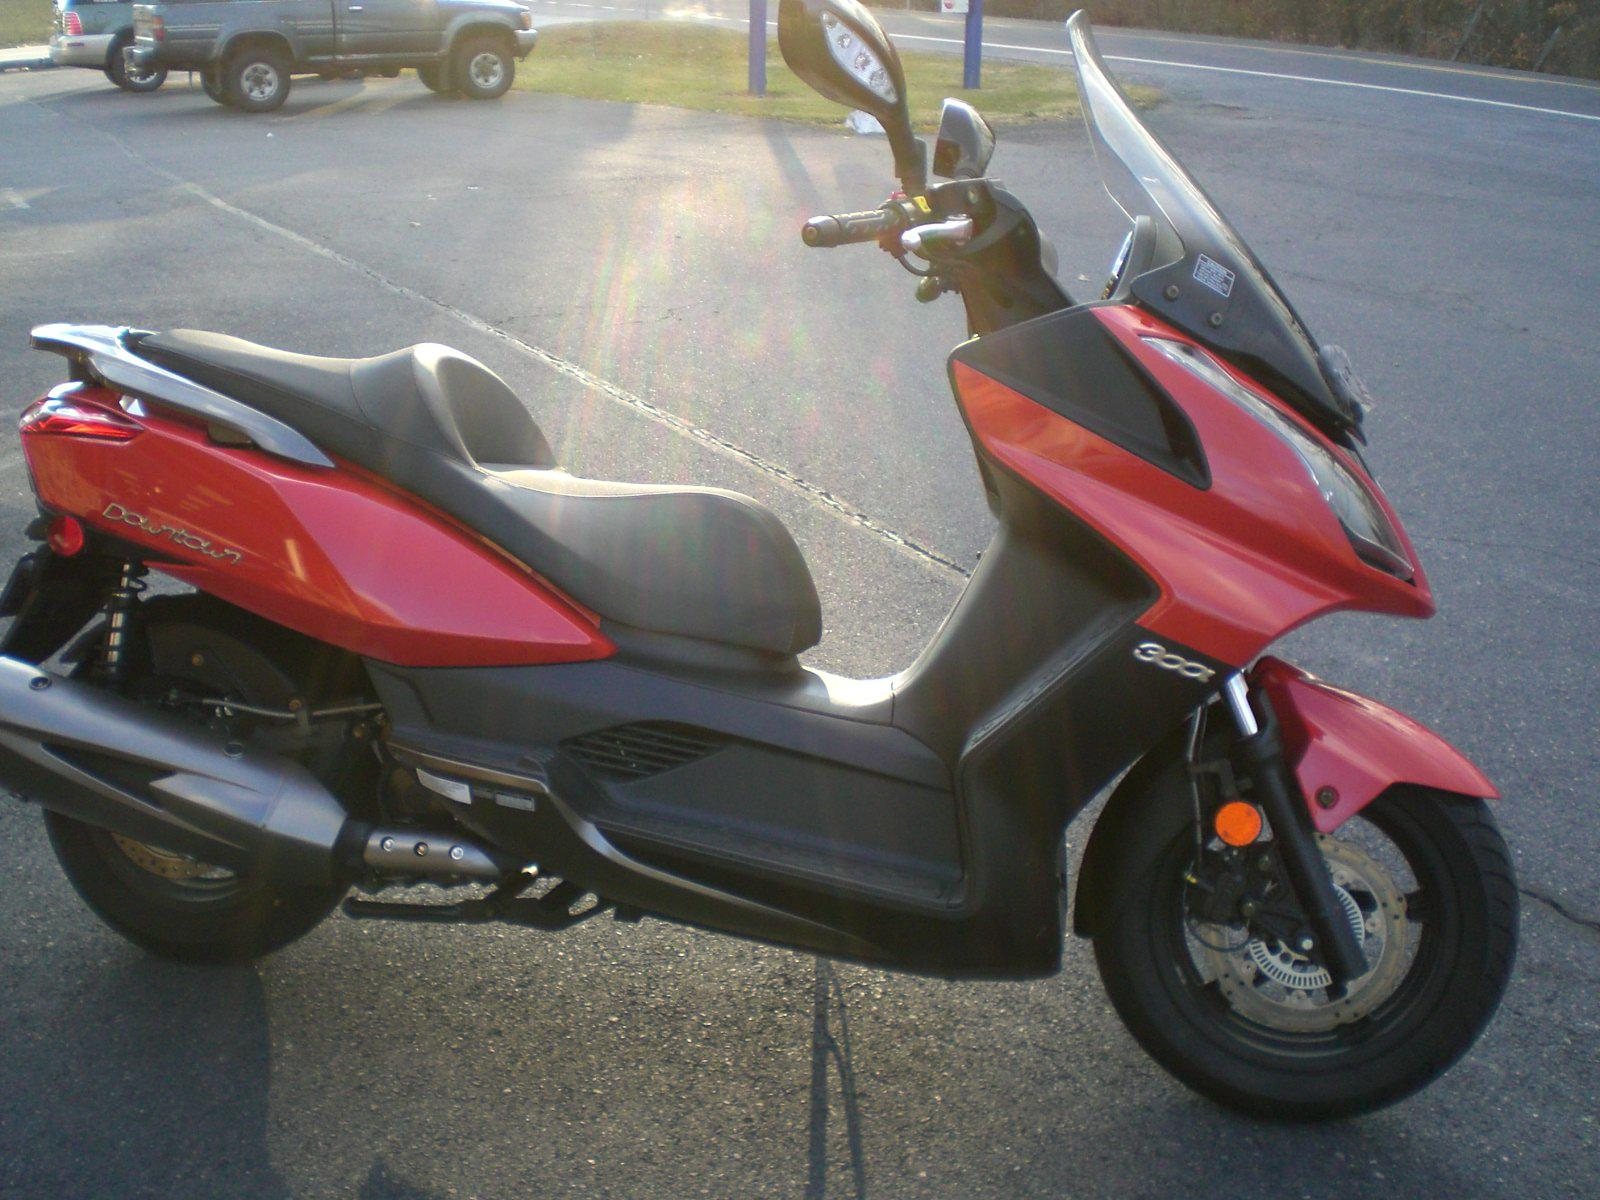 2015 kymco downtown 300i for sale in gettysburg, pa | rider's edge